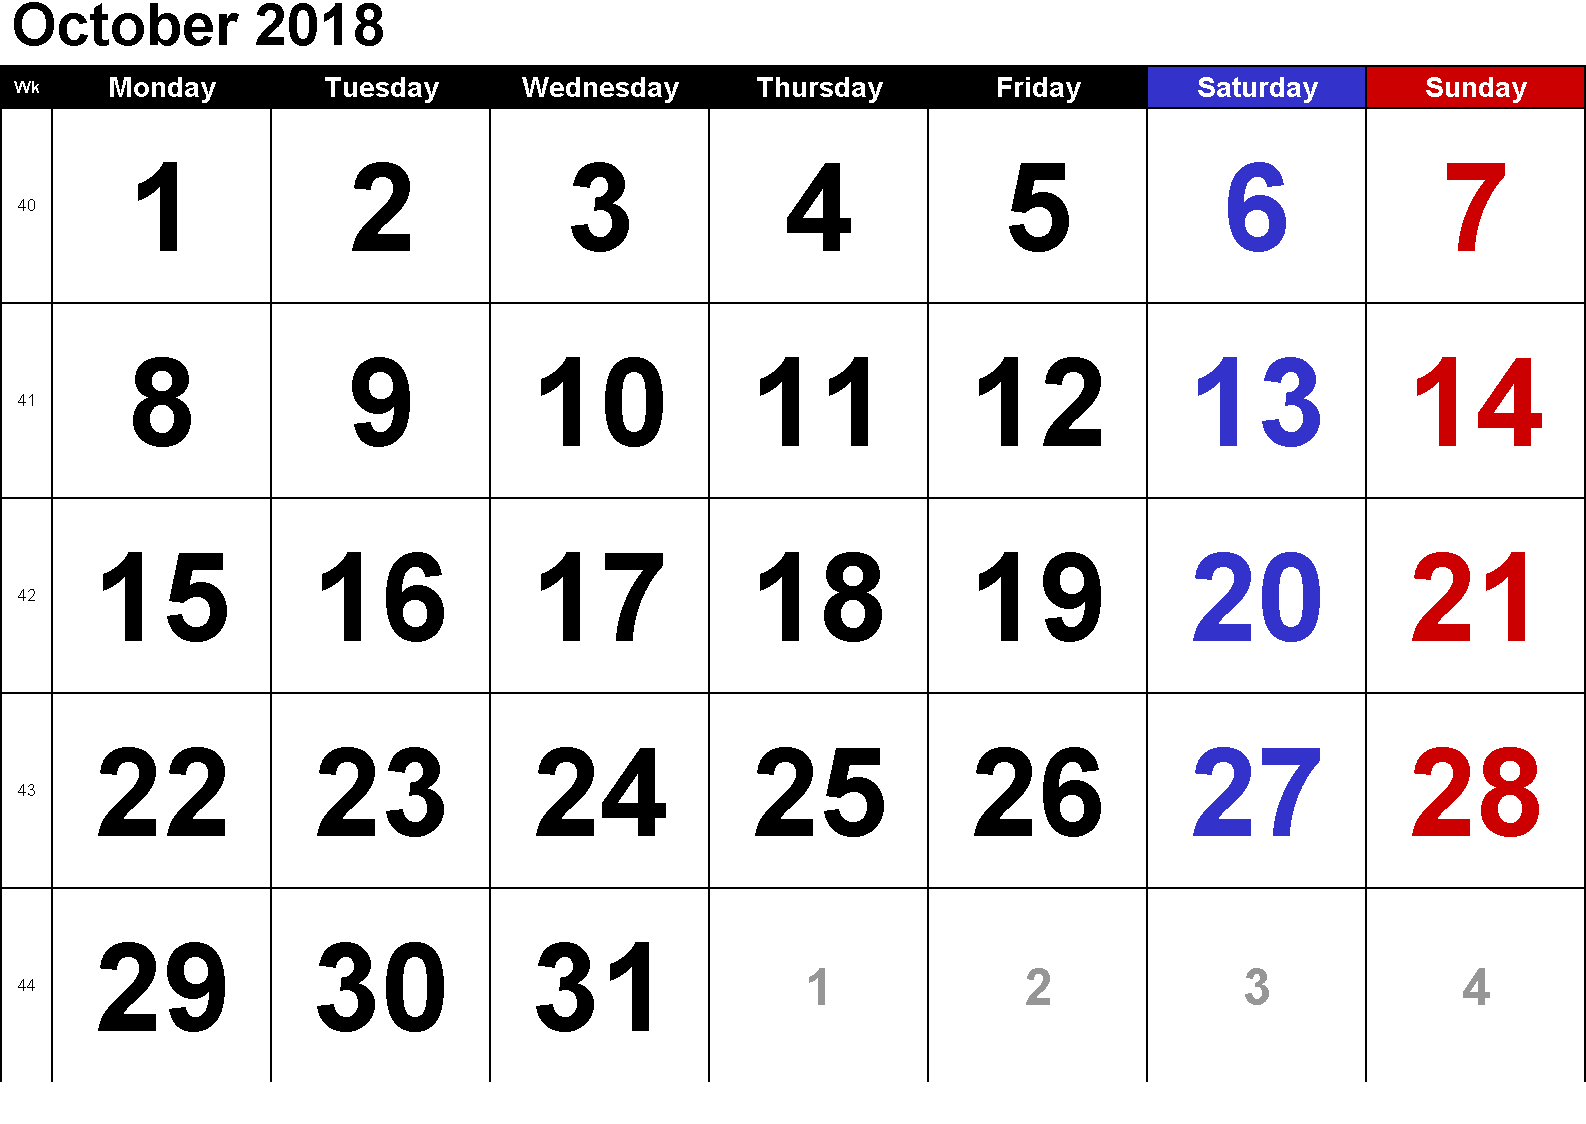 October 2018 Calendar Template Excel